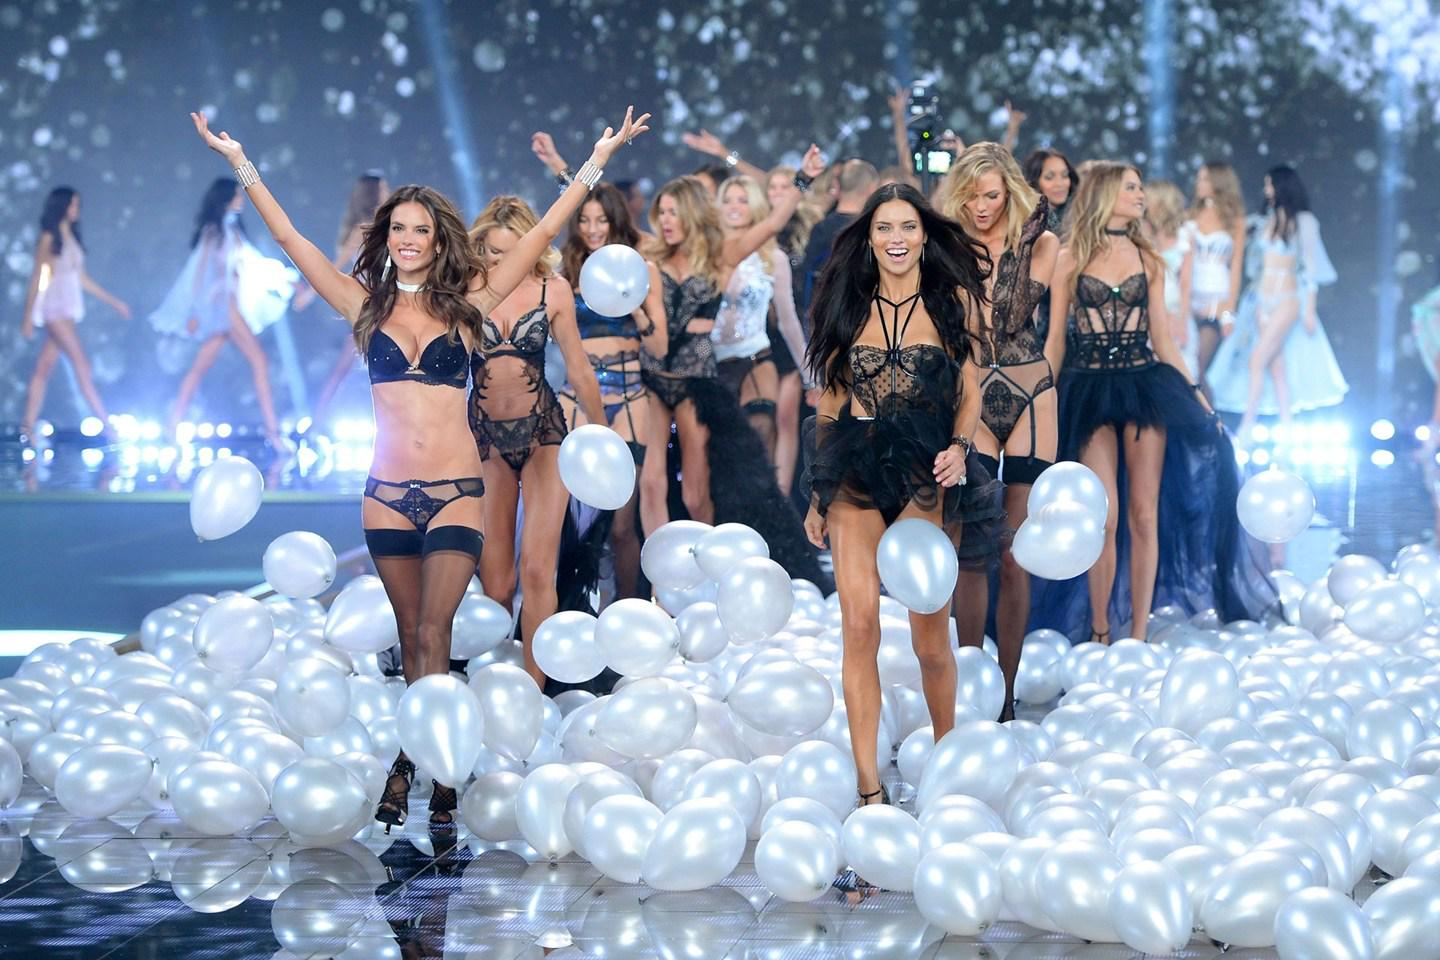 TODAY'S NEWS: And the musical talent at the 2015 @VictoriasSecret show will be… http://t.co/ot1f7zJx0B http://t.co/e9iBp32u8j